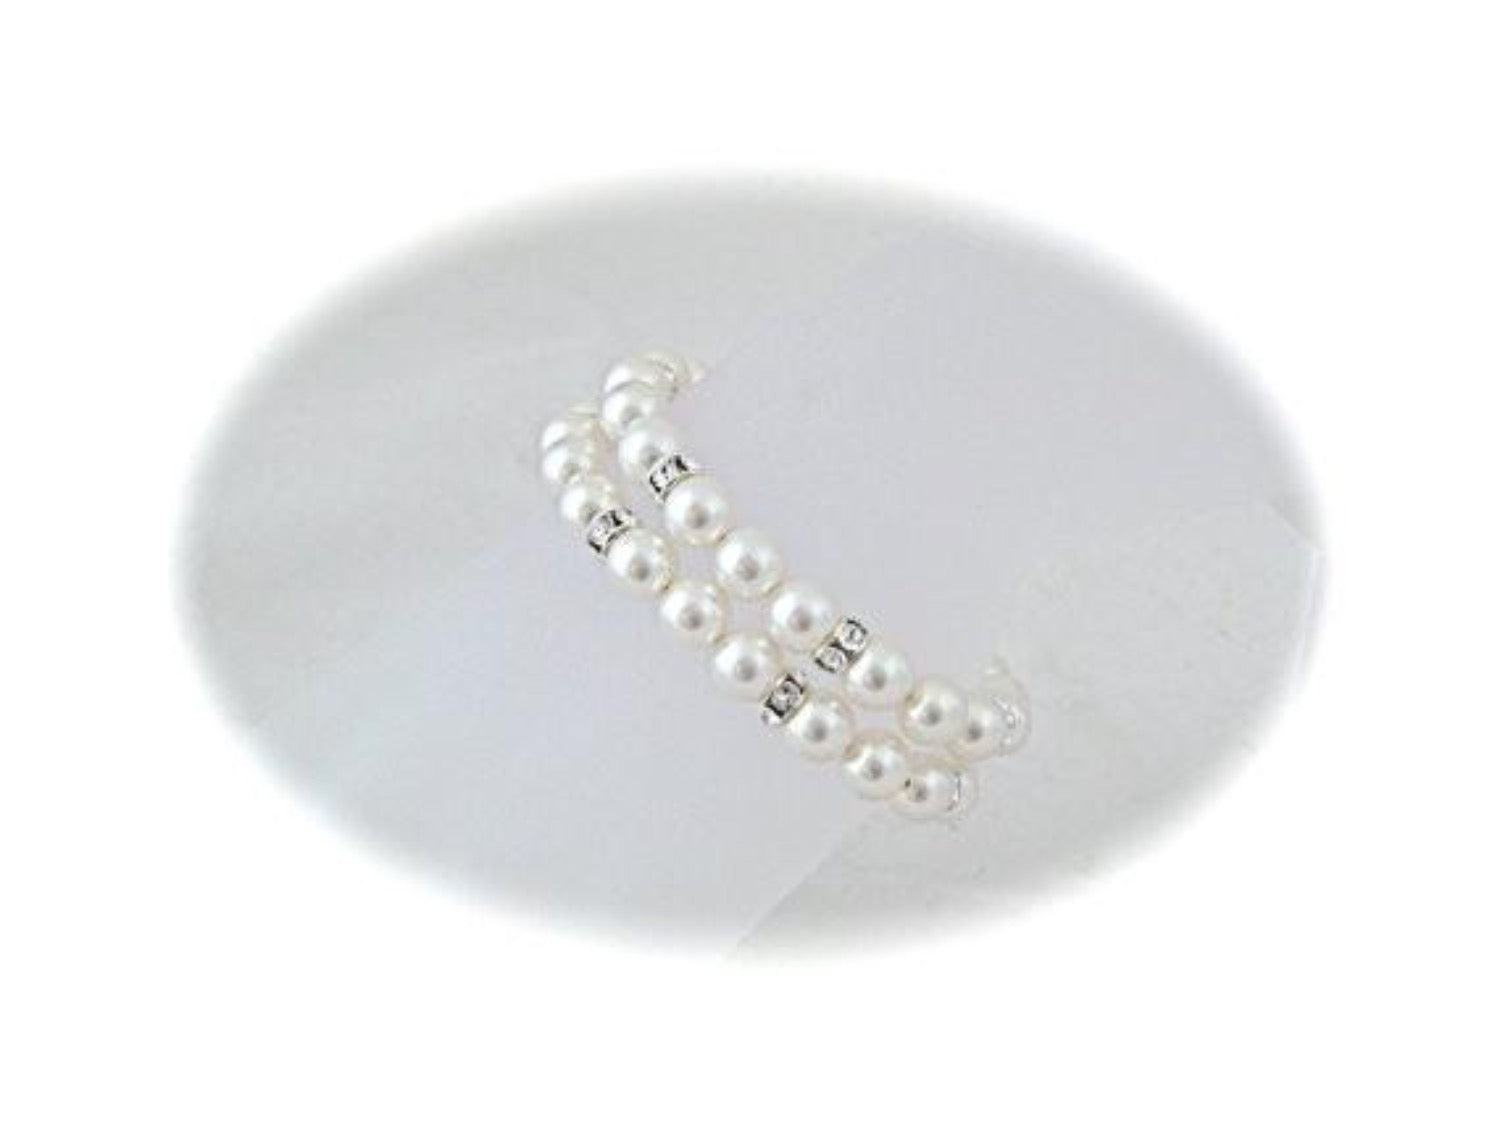 Double Strand Pearl Bracelet Bridal Jewelry - Clairesbridal